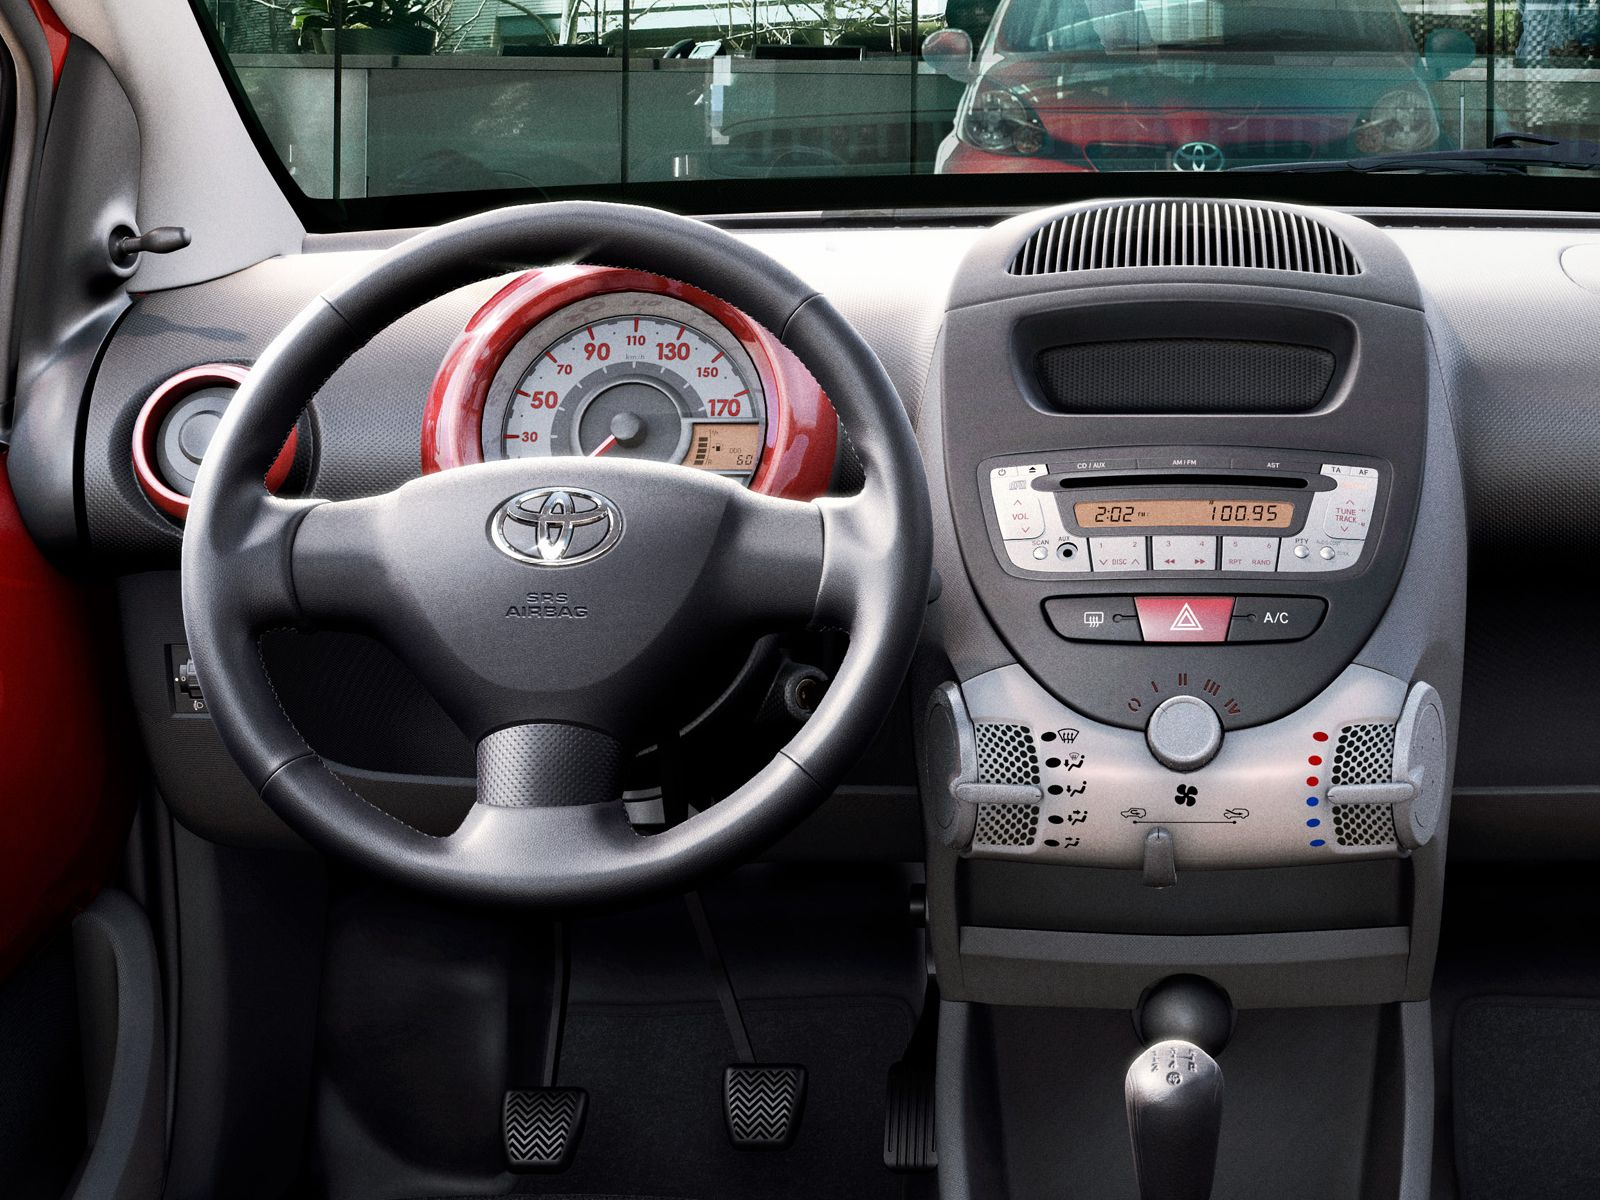 Image result for toyota aygo interior | Toyota aygo | Pinterest ...